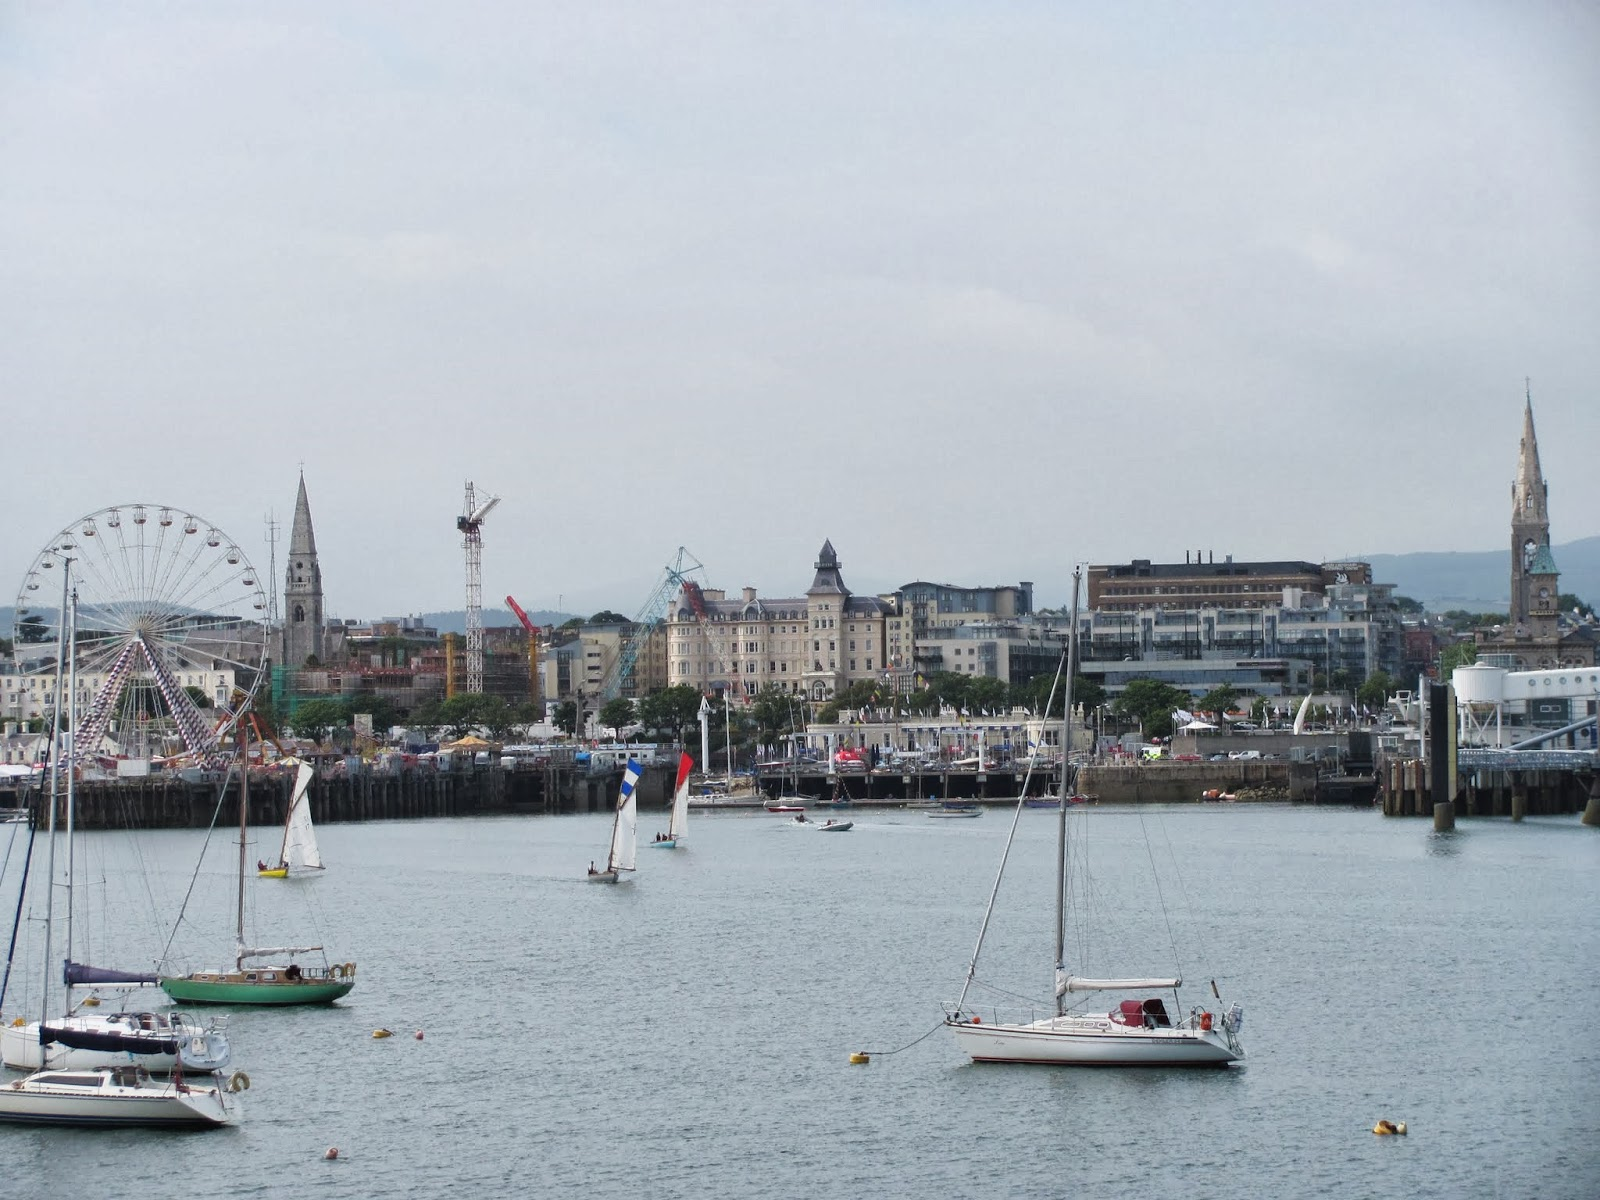 The carnival is in town and the village is seen in Dun Laoghaire, Co. Dublin, Ireland